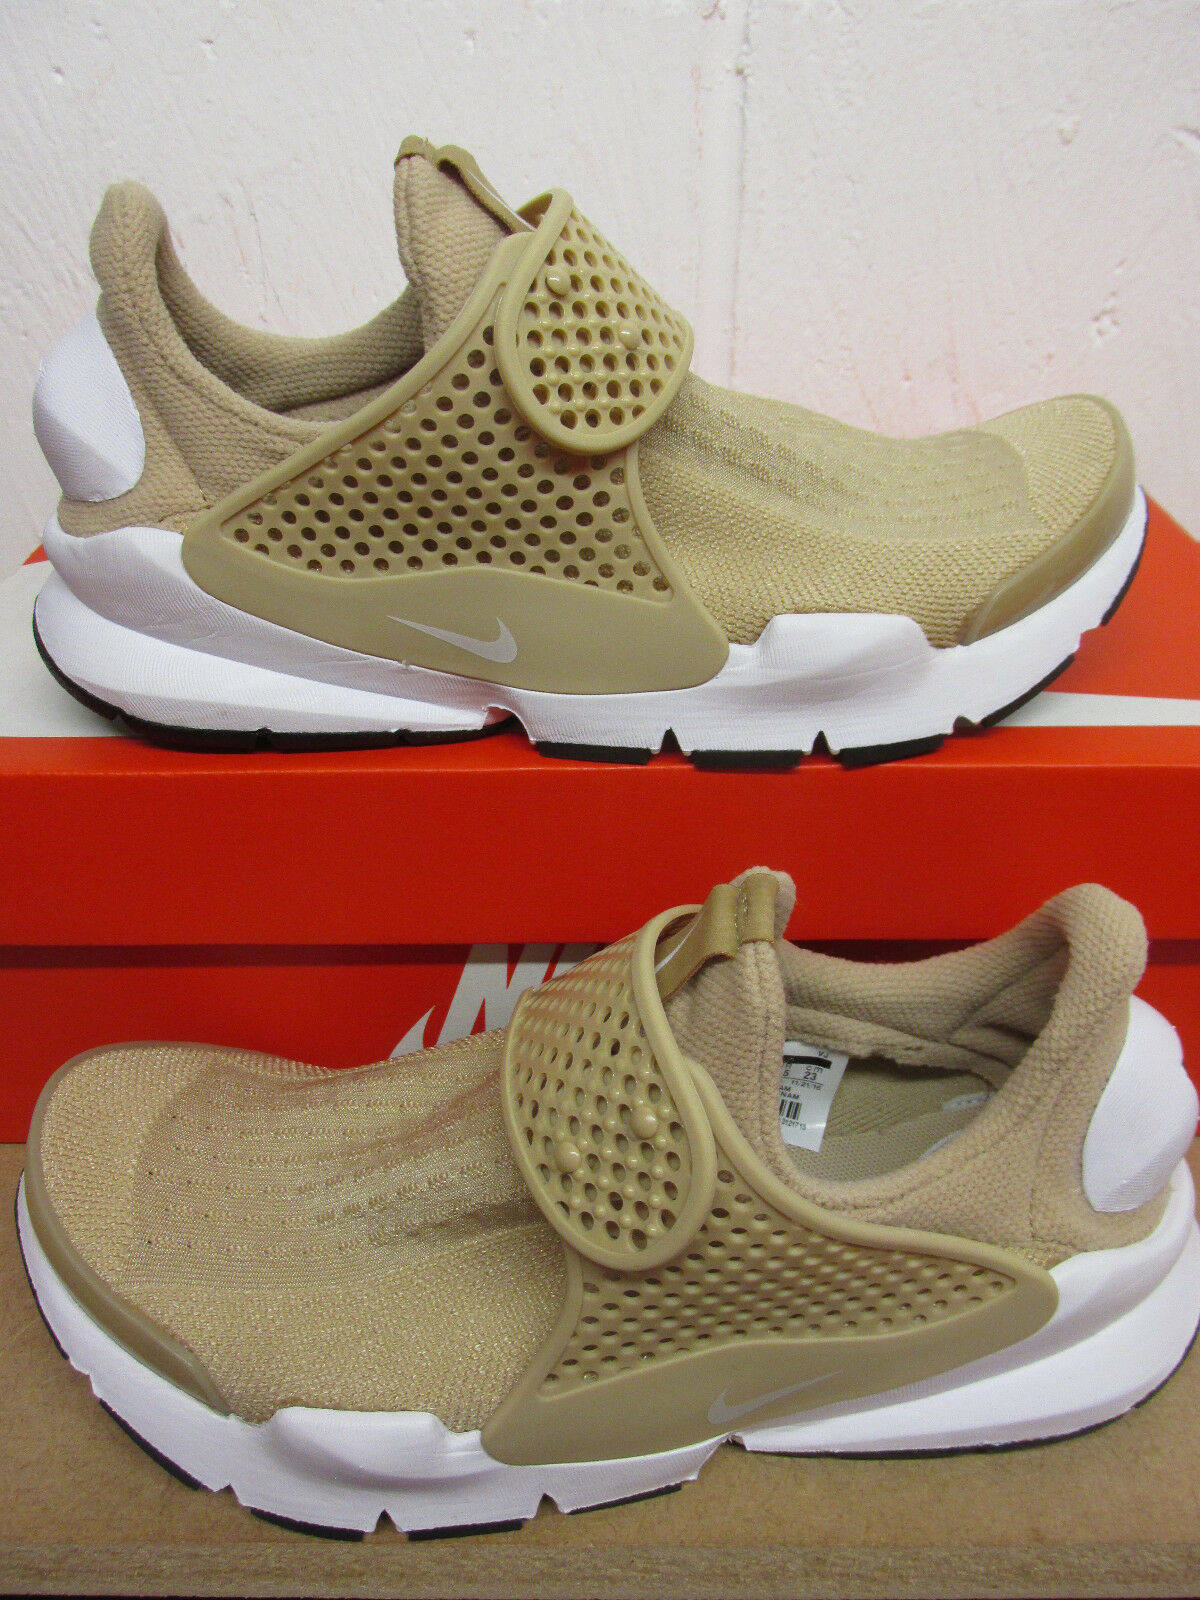 Nike Womens Sock Dart Running Trainers 848475 200 Sneakers Shoes